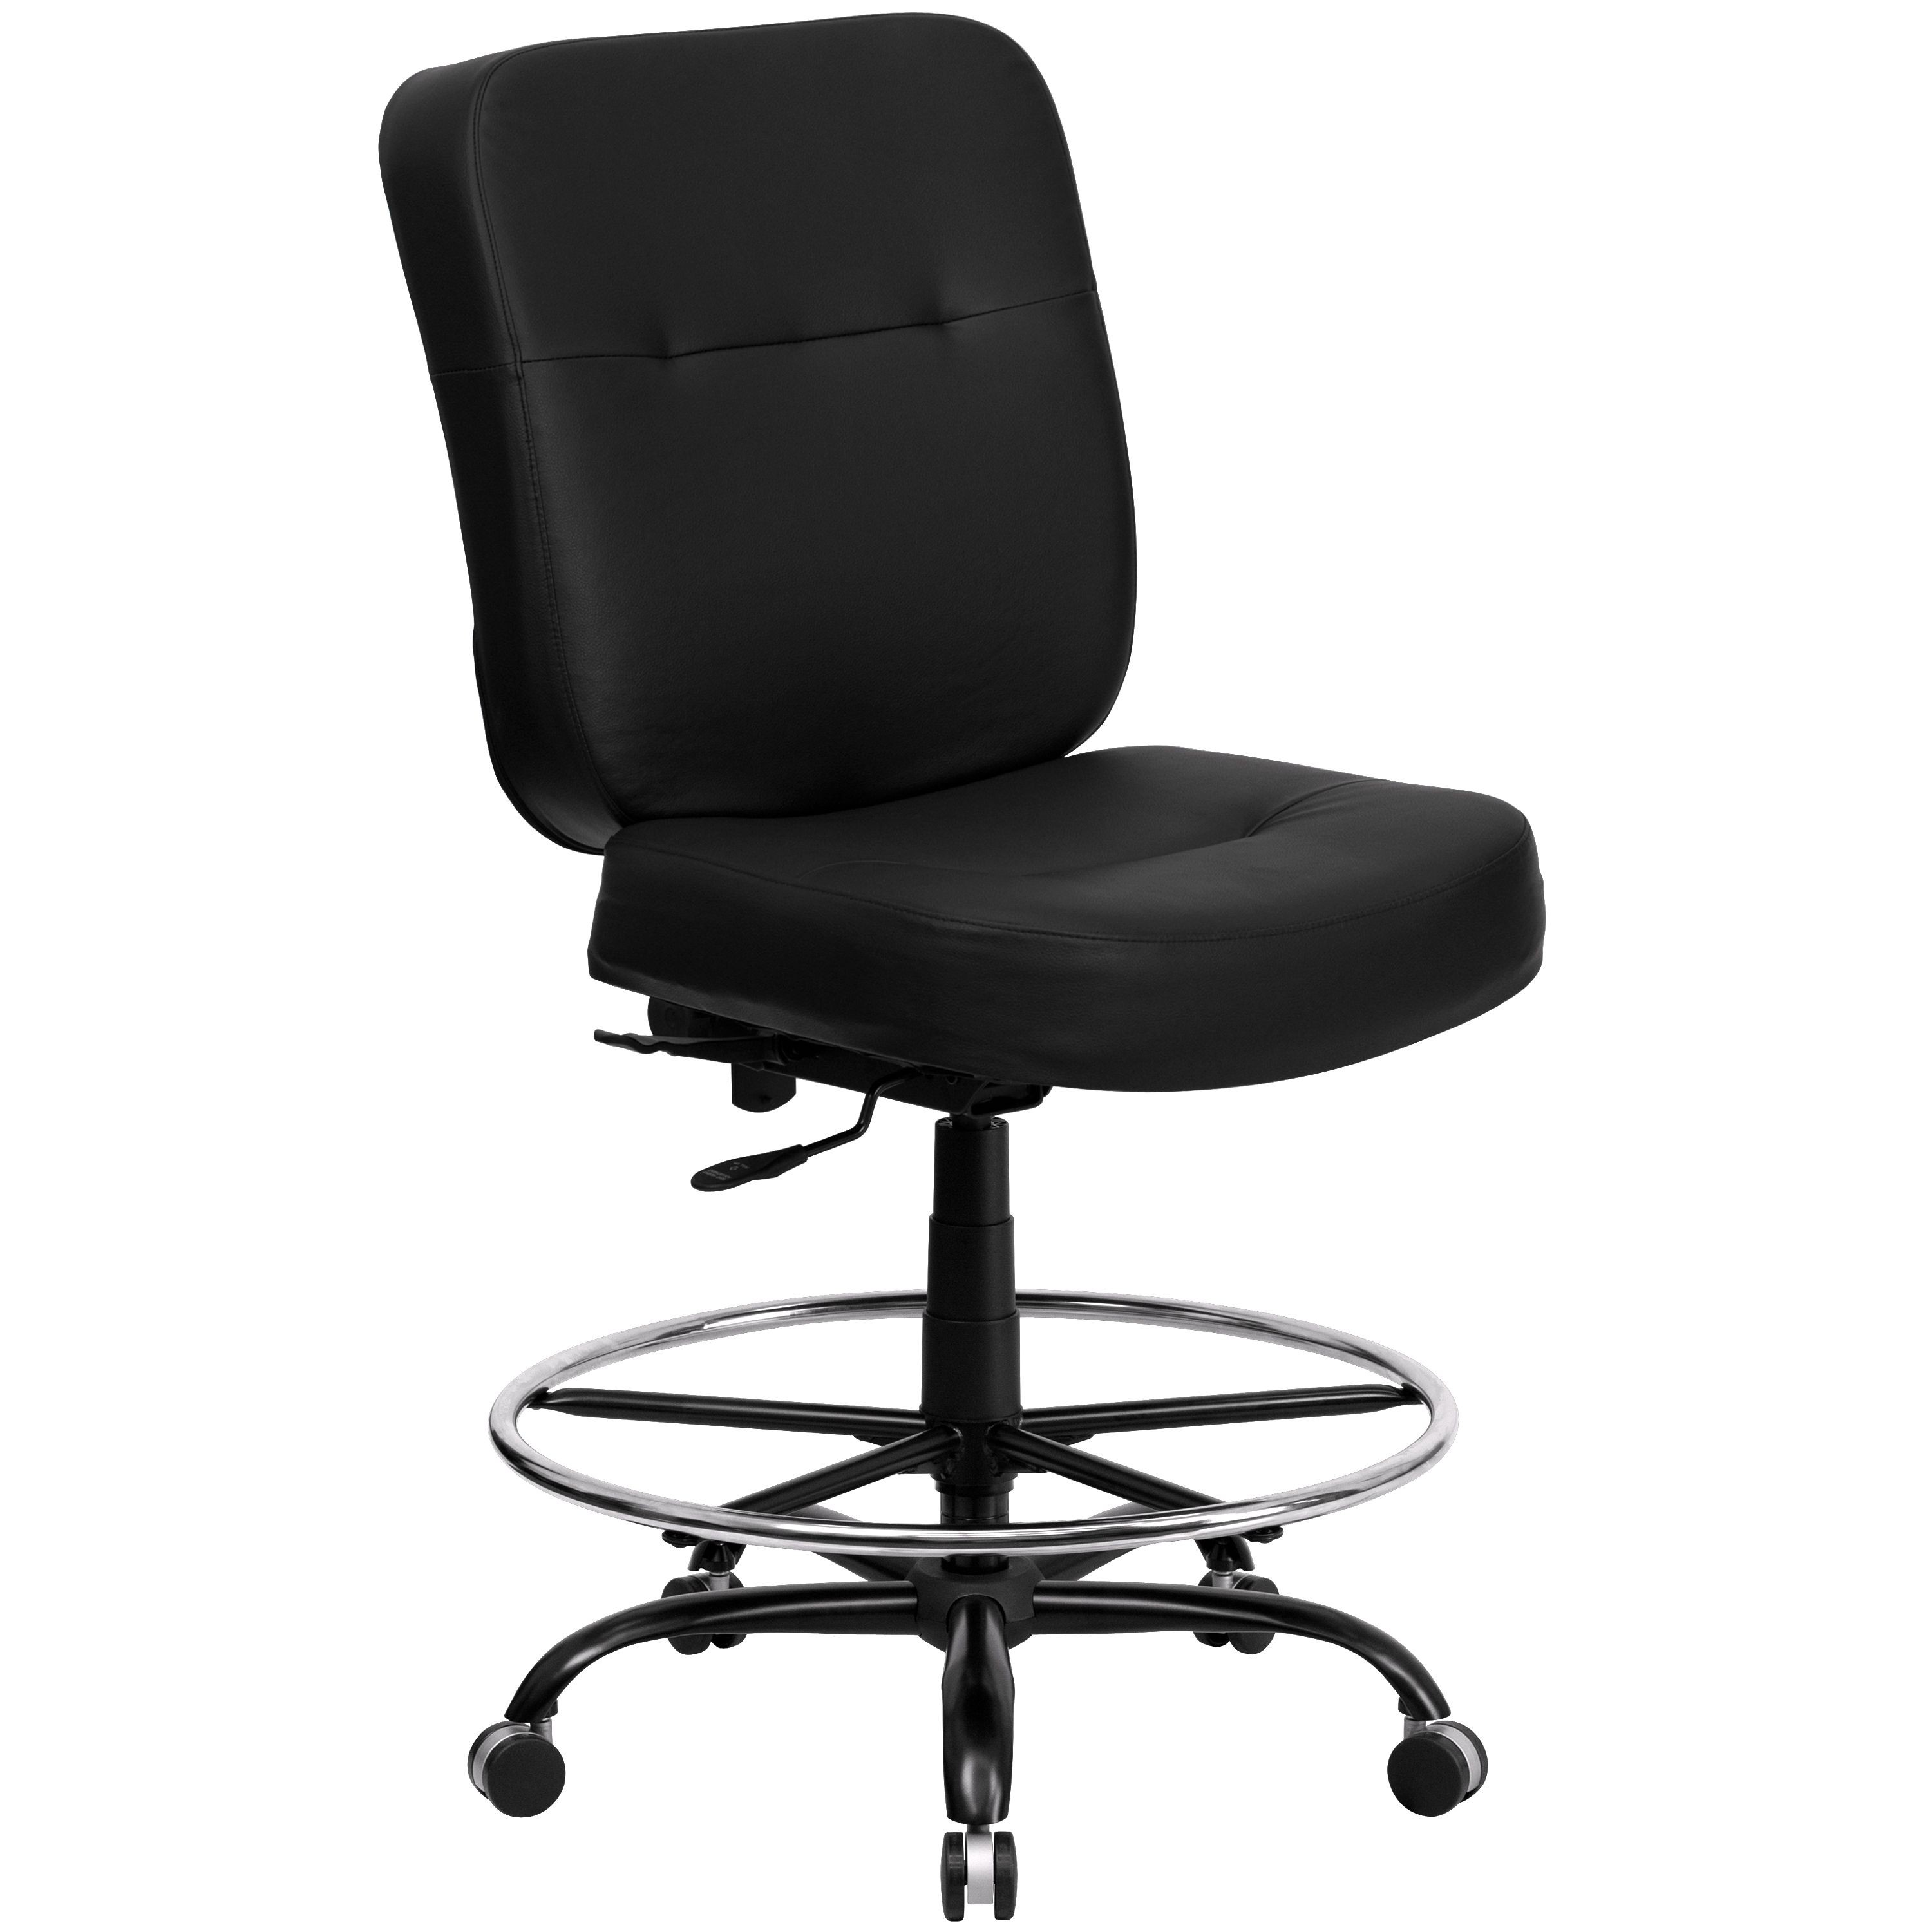 Flash Furniture WL-735SYG-BK-LEA-D-GG HERCULES Series Big & Tall Black Leather Drafting Stool with Extra Wide Seat, 400 Lb. Capacity